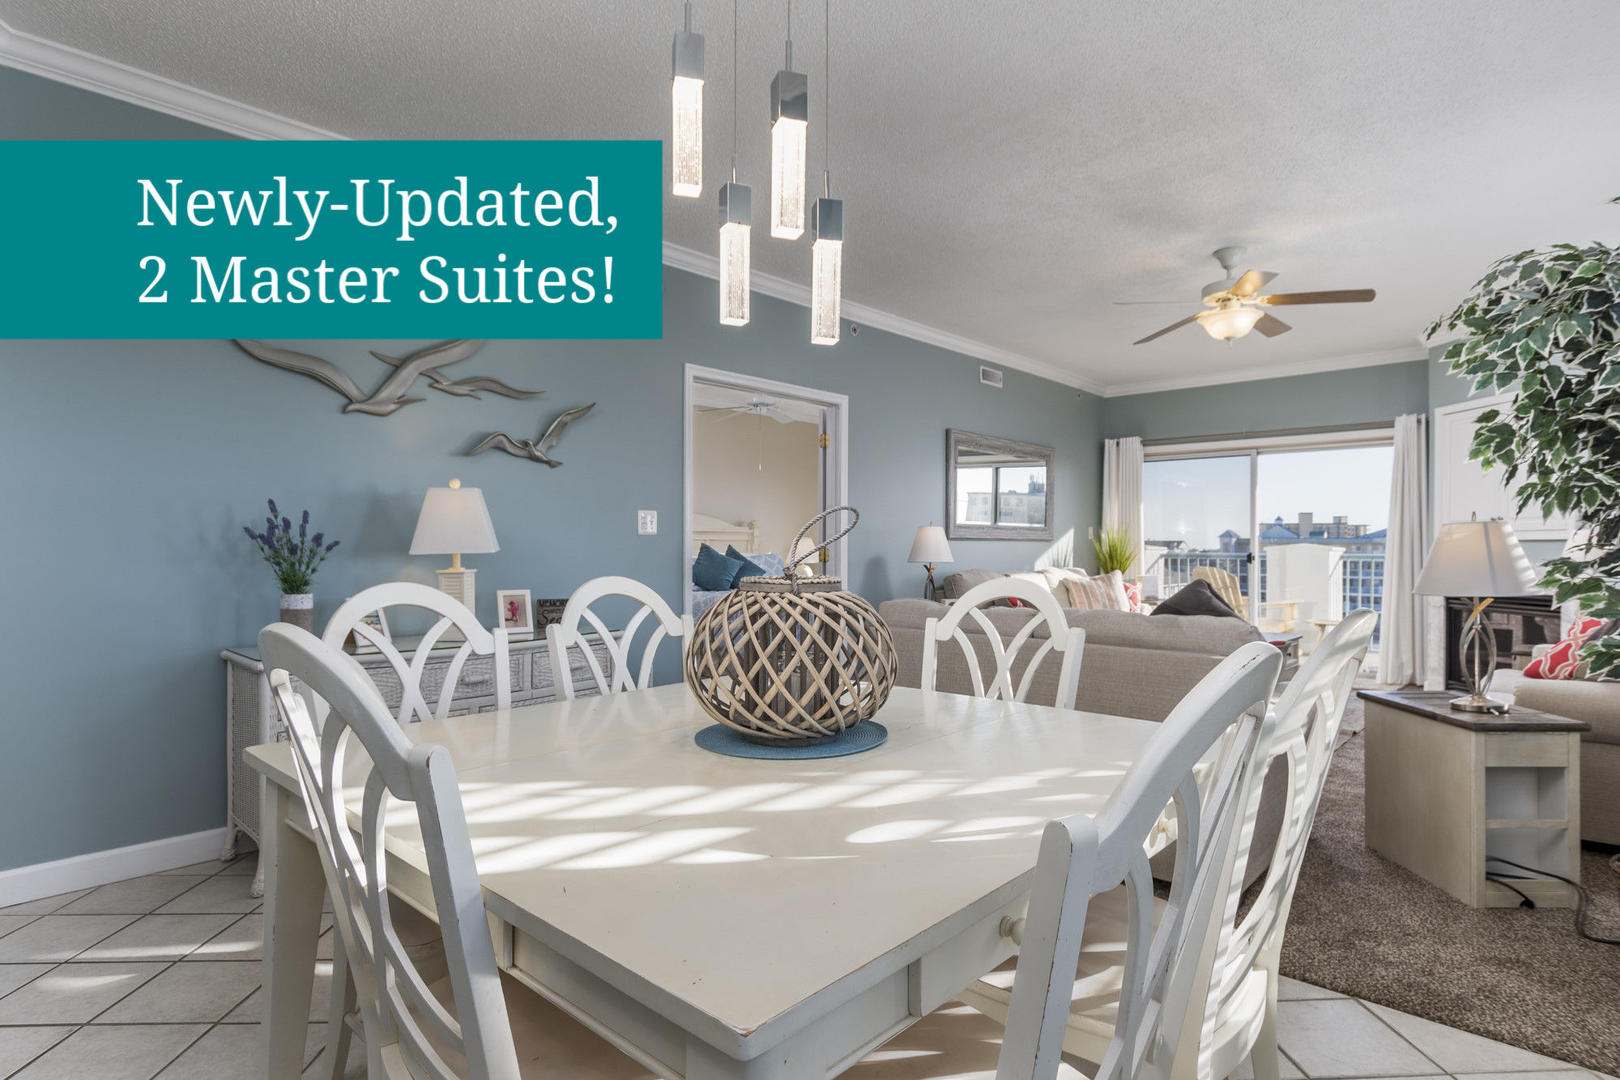 Newly-Updated, 2 Master Suites!